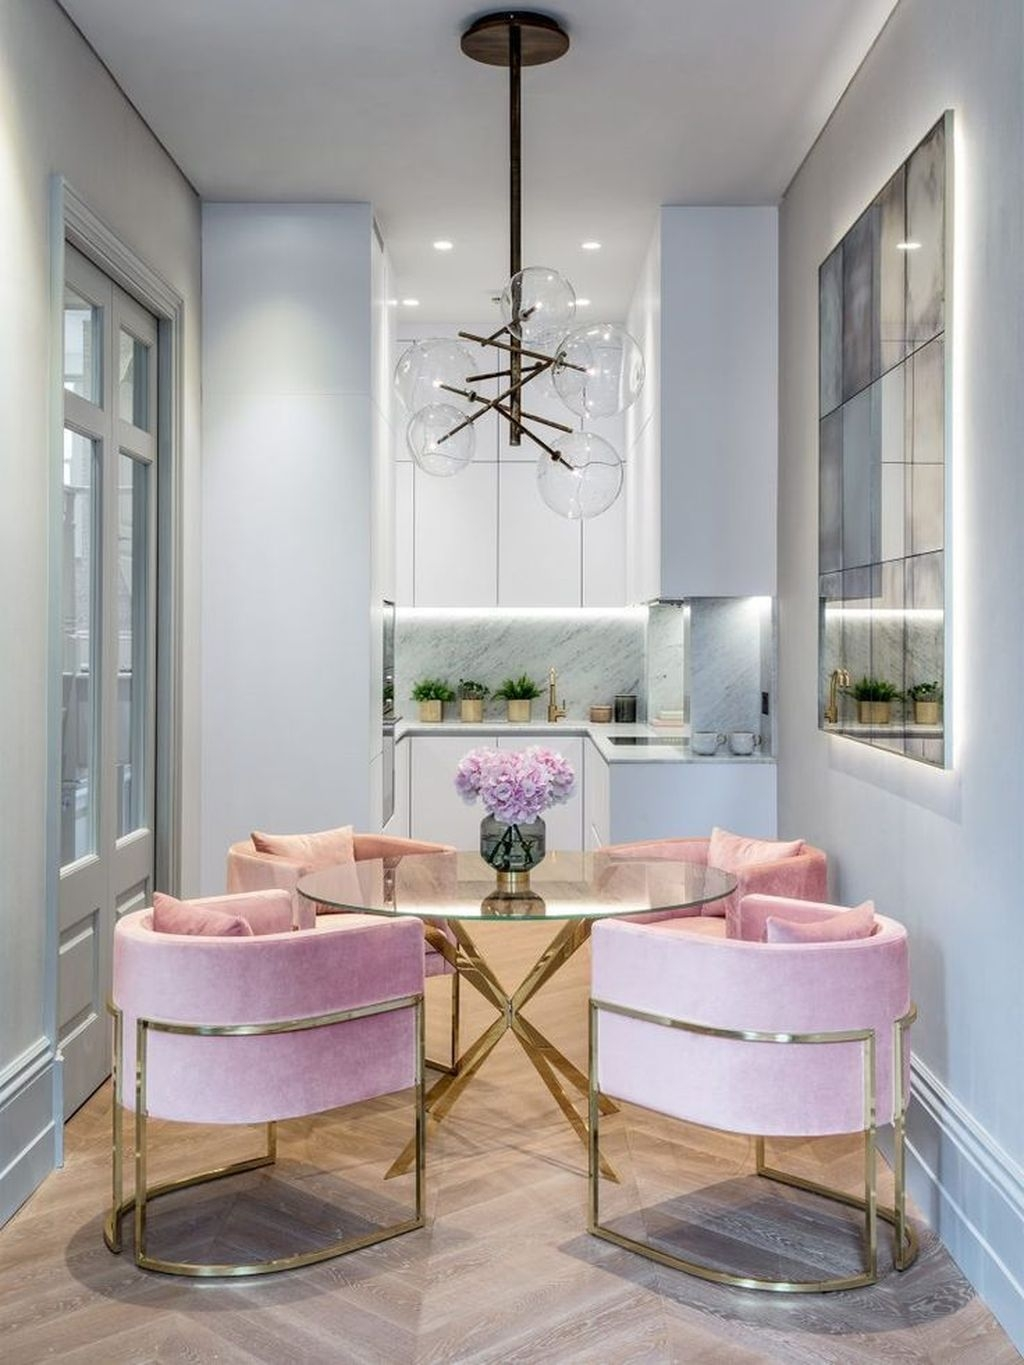 Genius Dining Room Design Ideas You Were Looking For24